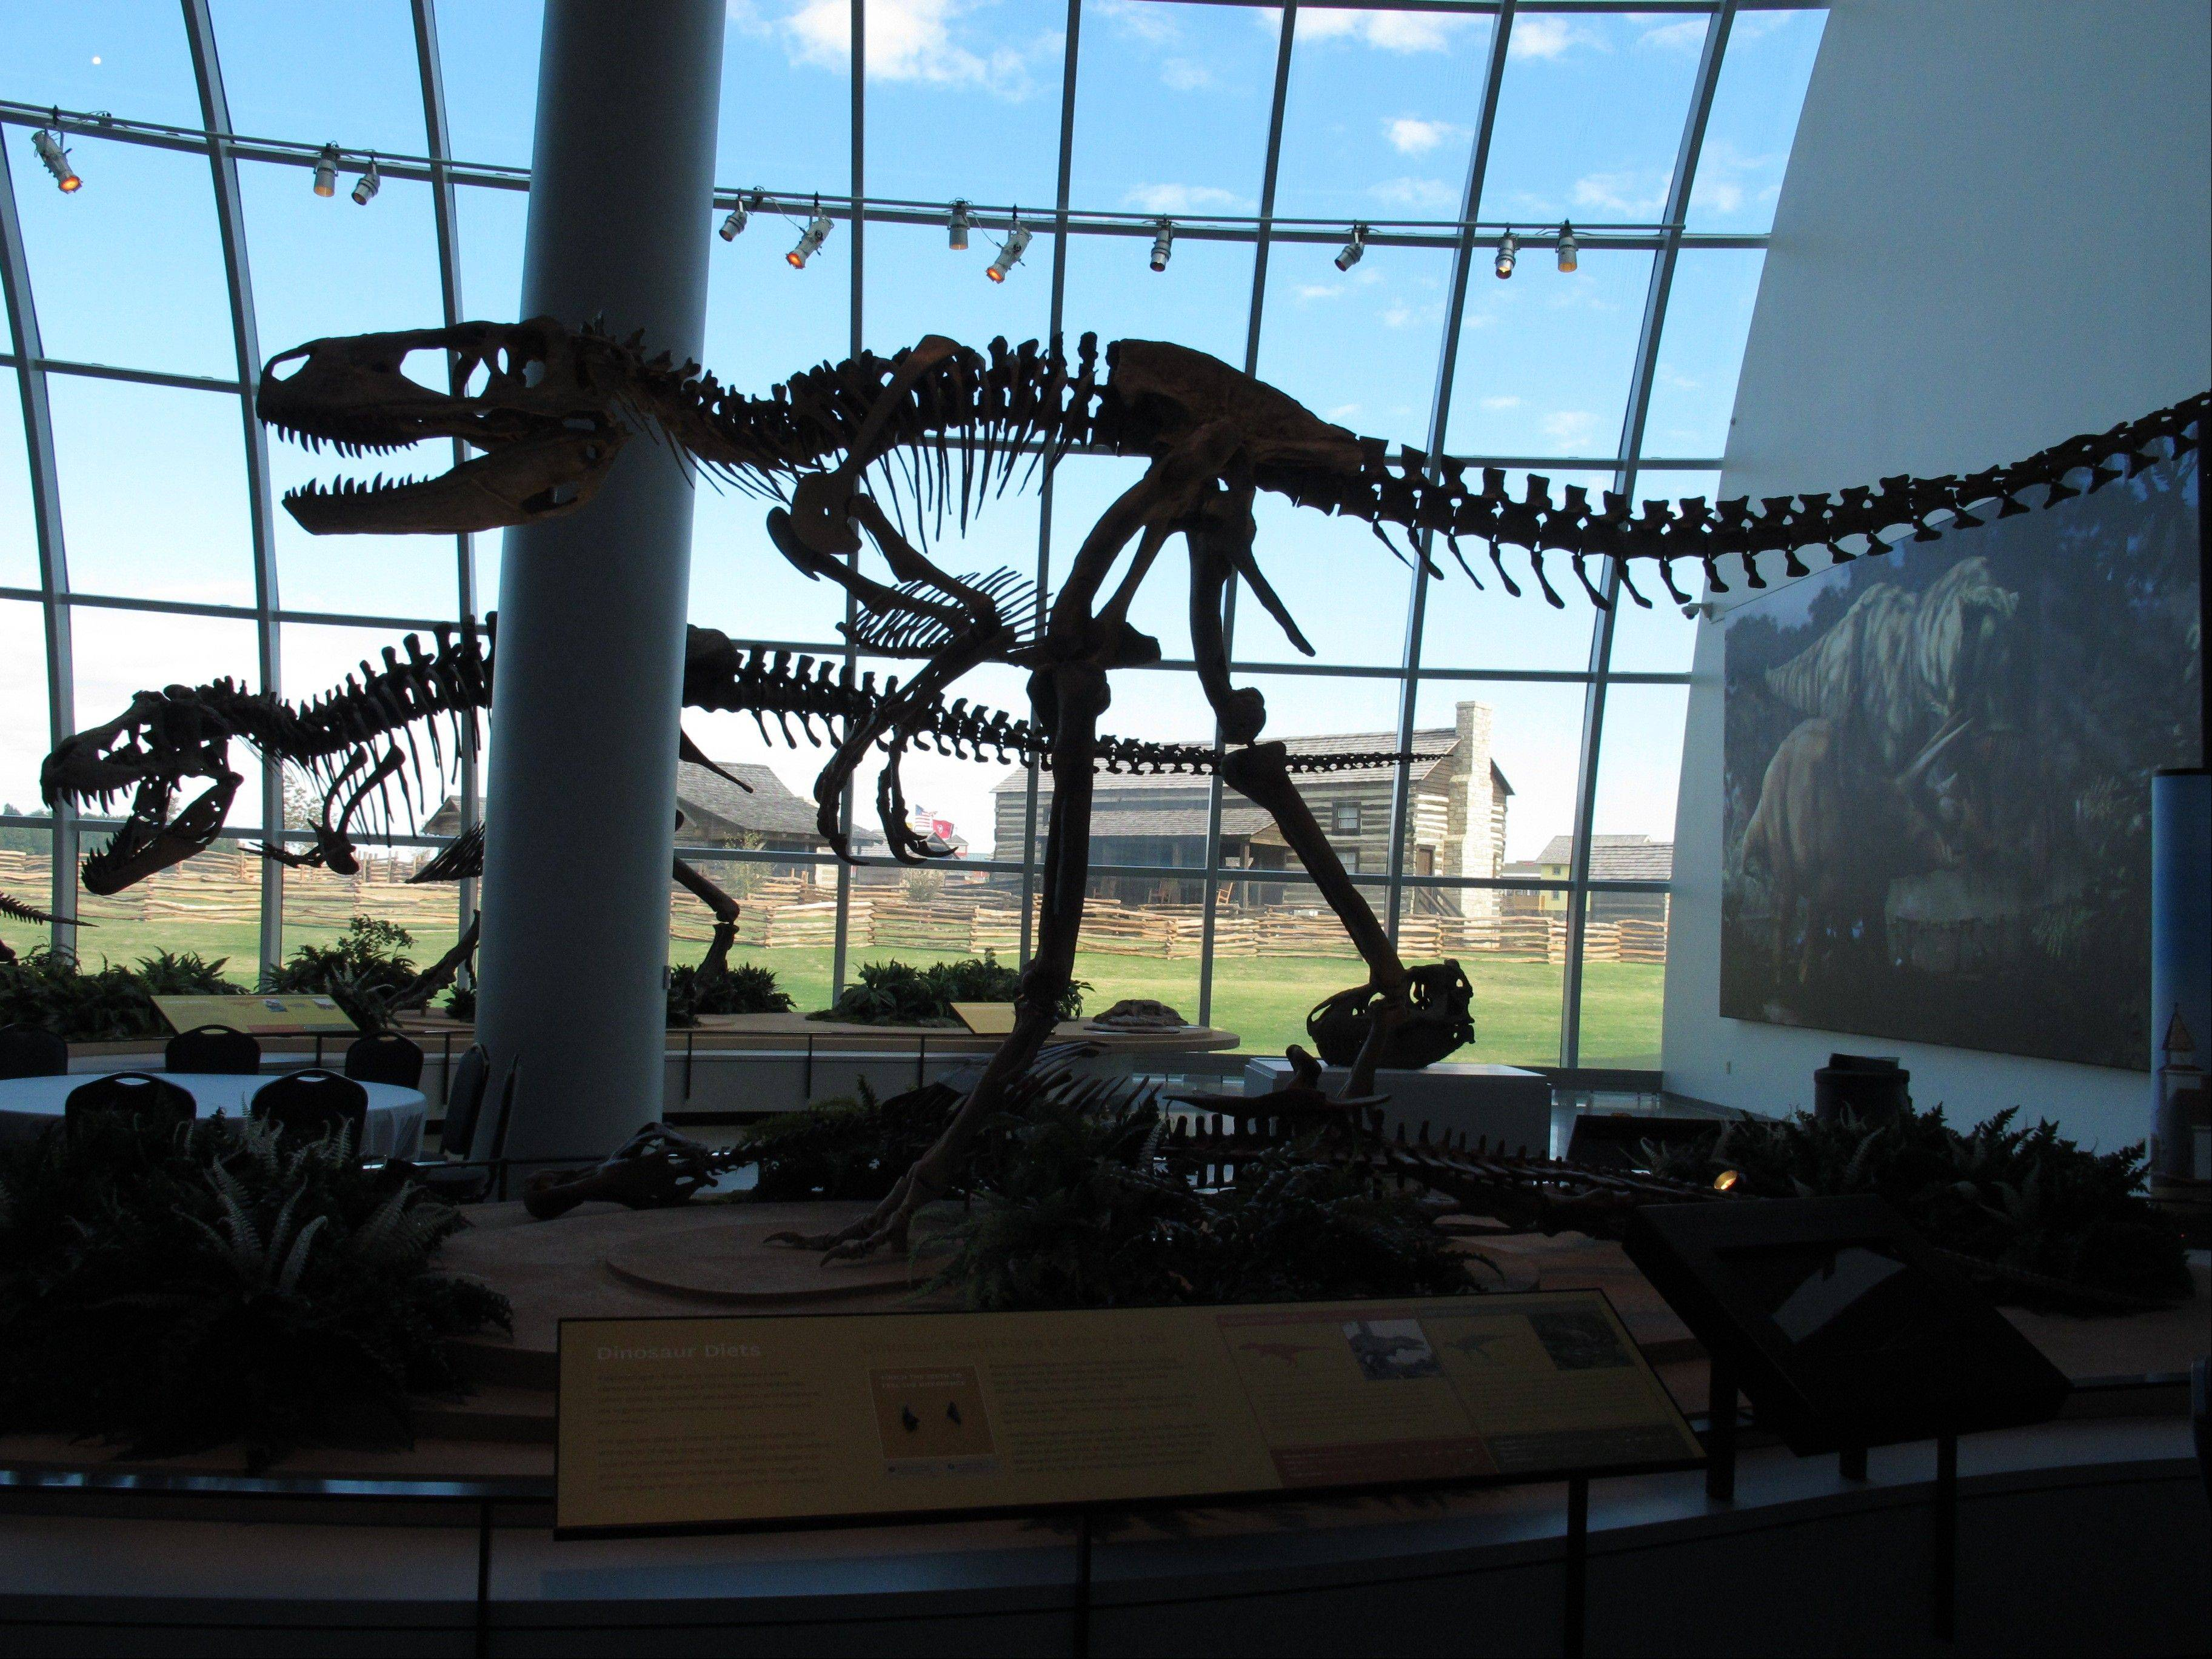 Visitors can view dinosaur skeletons and much more at Discovery Park of America, a new museum and educational venue in Union City, Tenn.